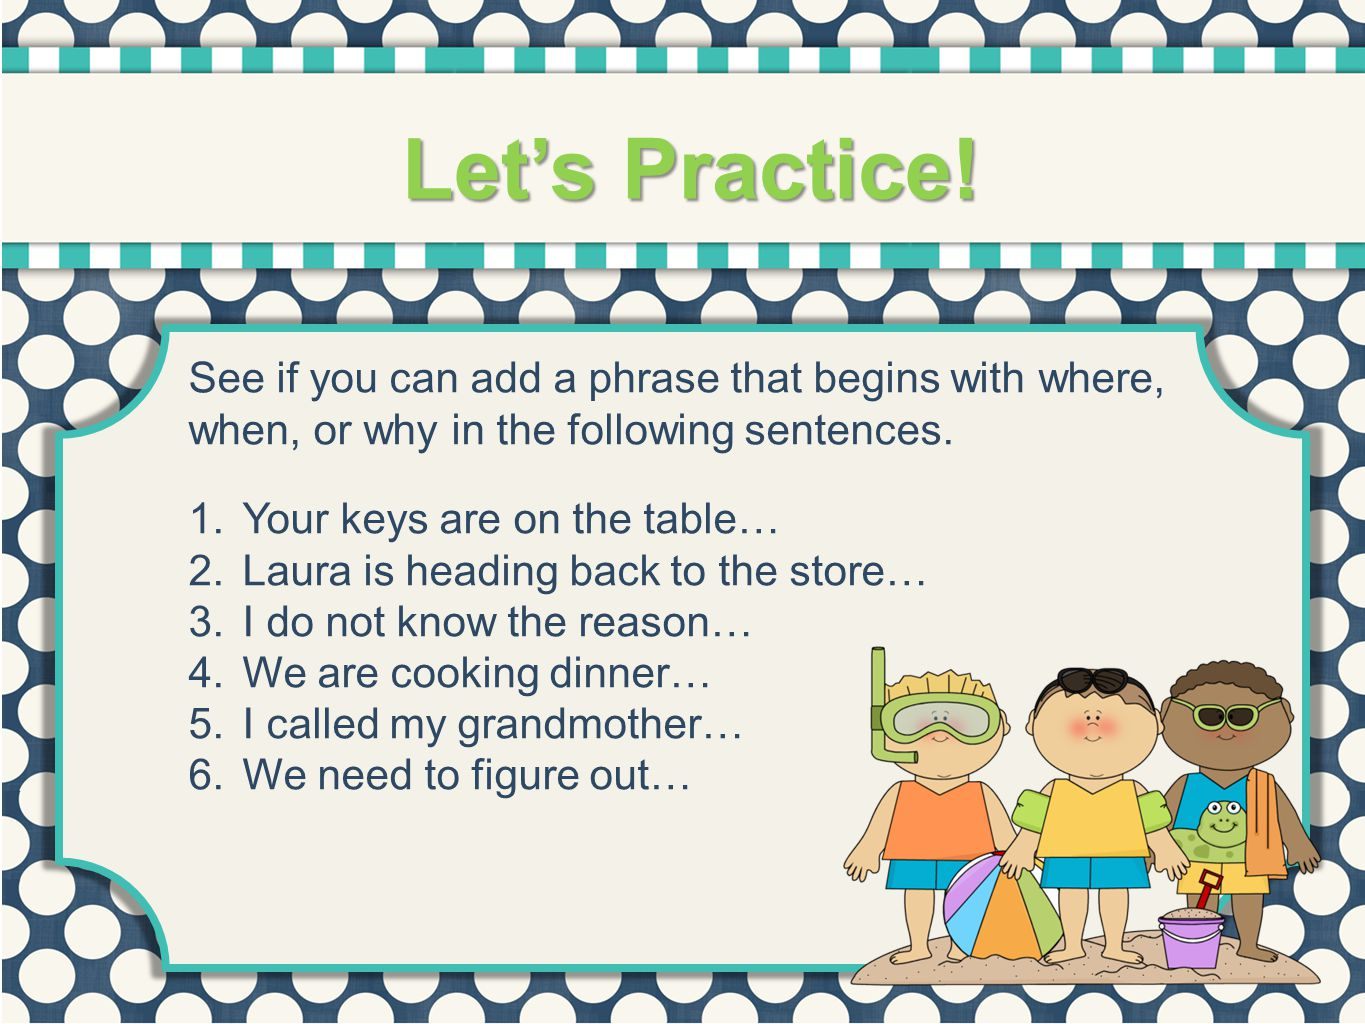 Let's Practice! See if you can add a phrase that begins with where, when, or why in the following sentences.